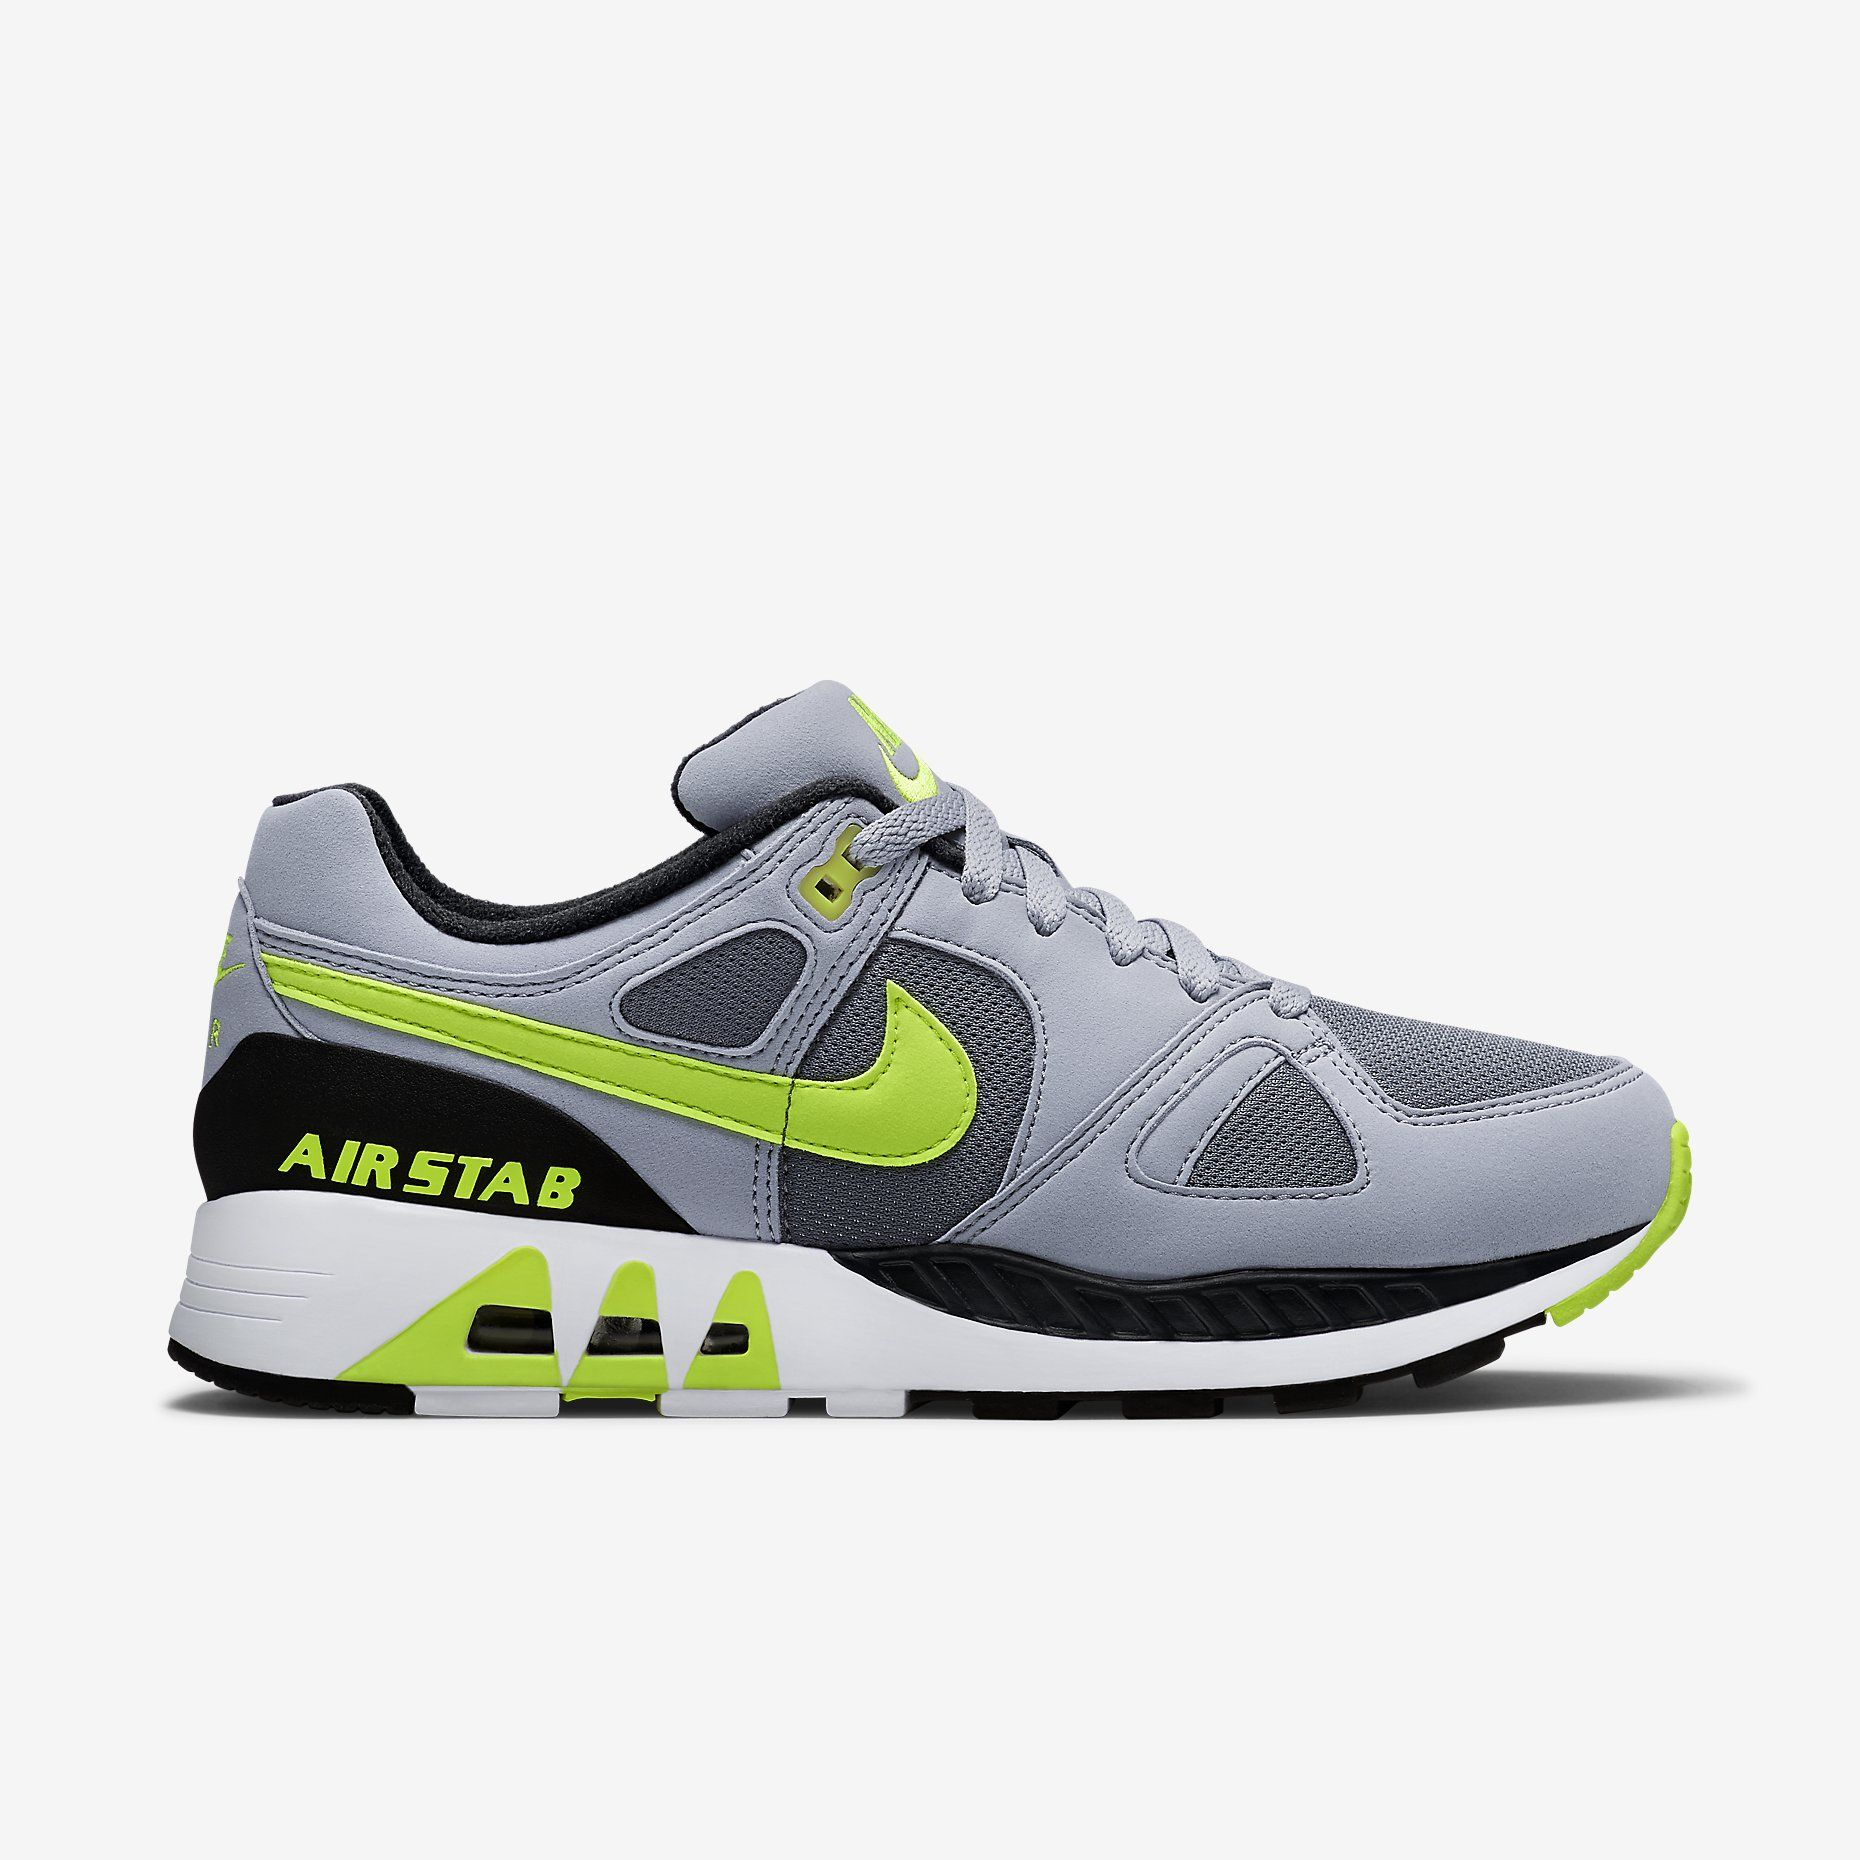 Nike Air Stab – Chaussure pour Homme. Nike Store FR   00 MEN S SHOES ... e18d26420484